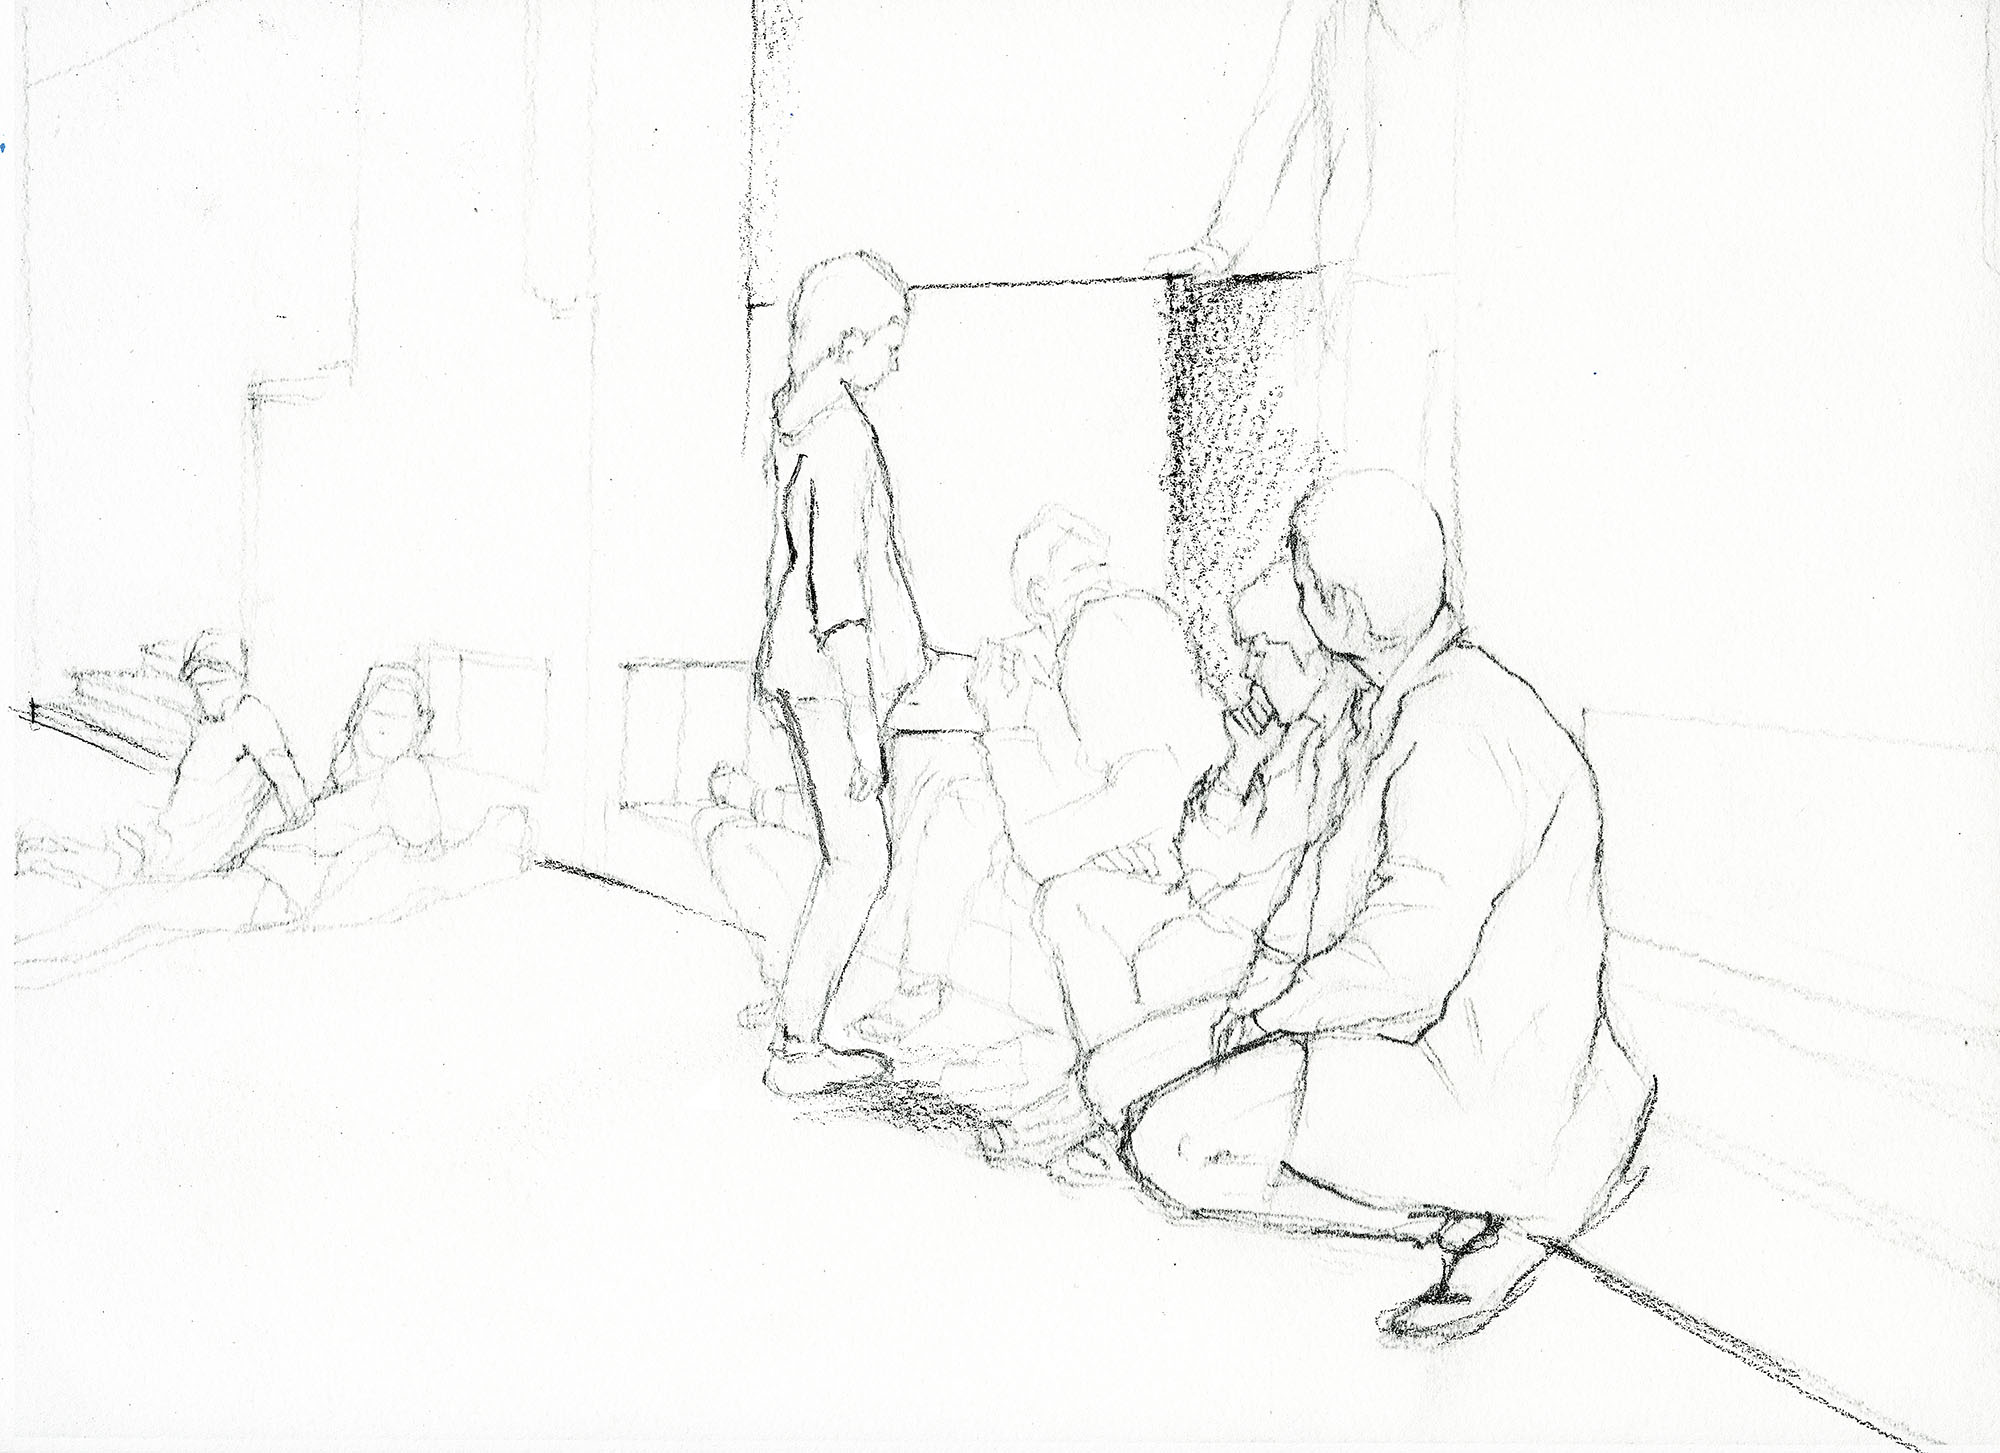 Philippe Parreno,Tino Sehgal's Annlee, drawn at Palais de Tokyo. Pencil on paper.